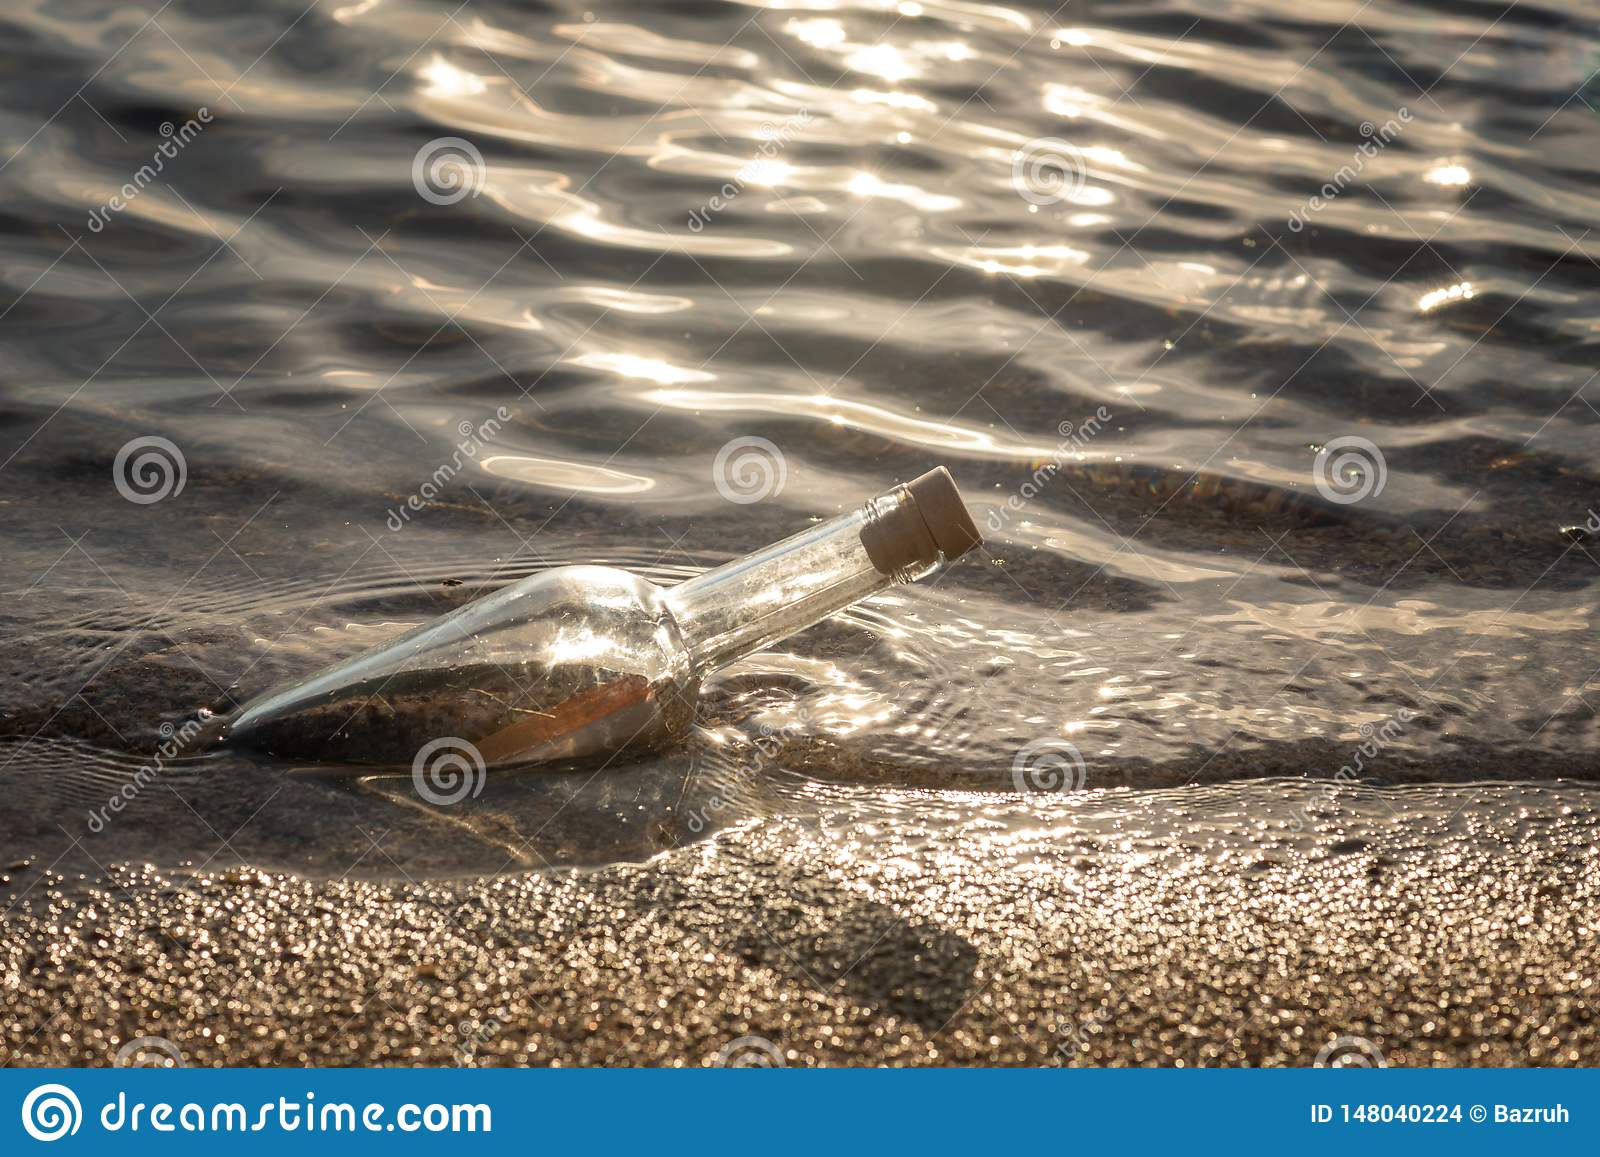 Message in a corked bottle on shore, hope of salvation